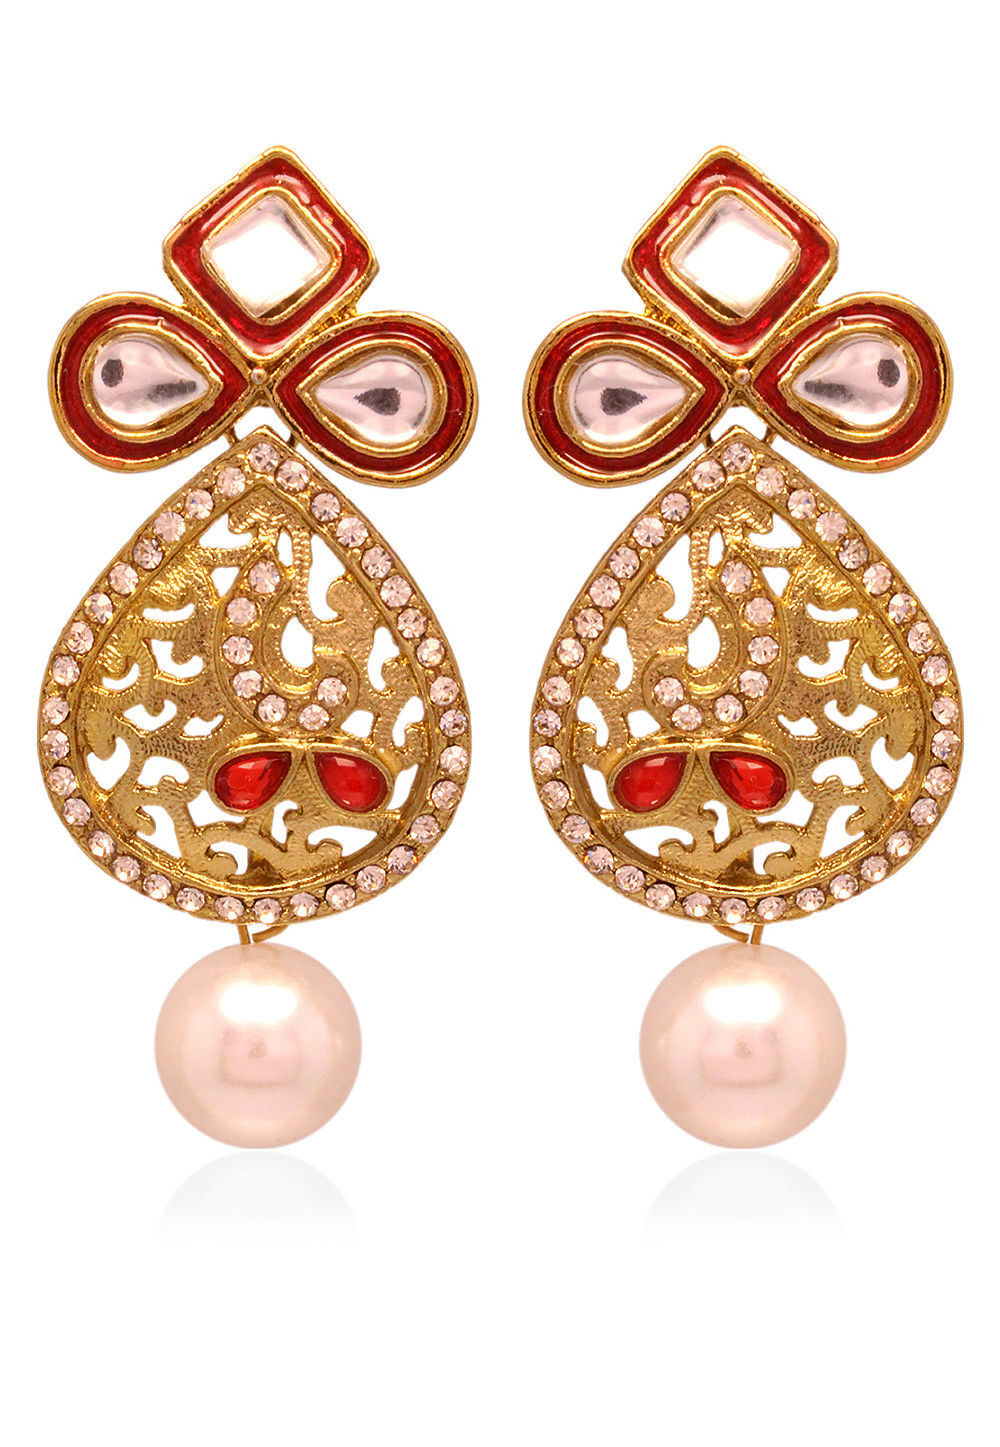 Kundan Earring in Golden and Red